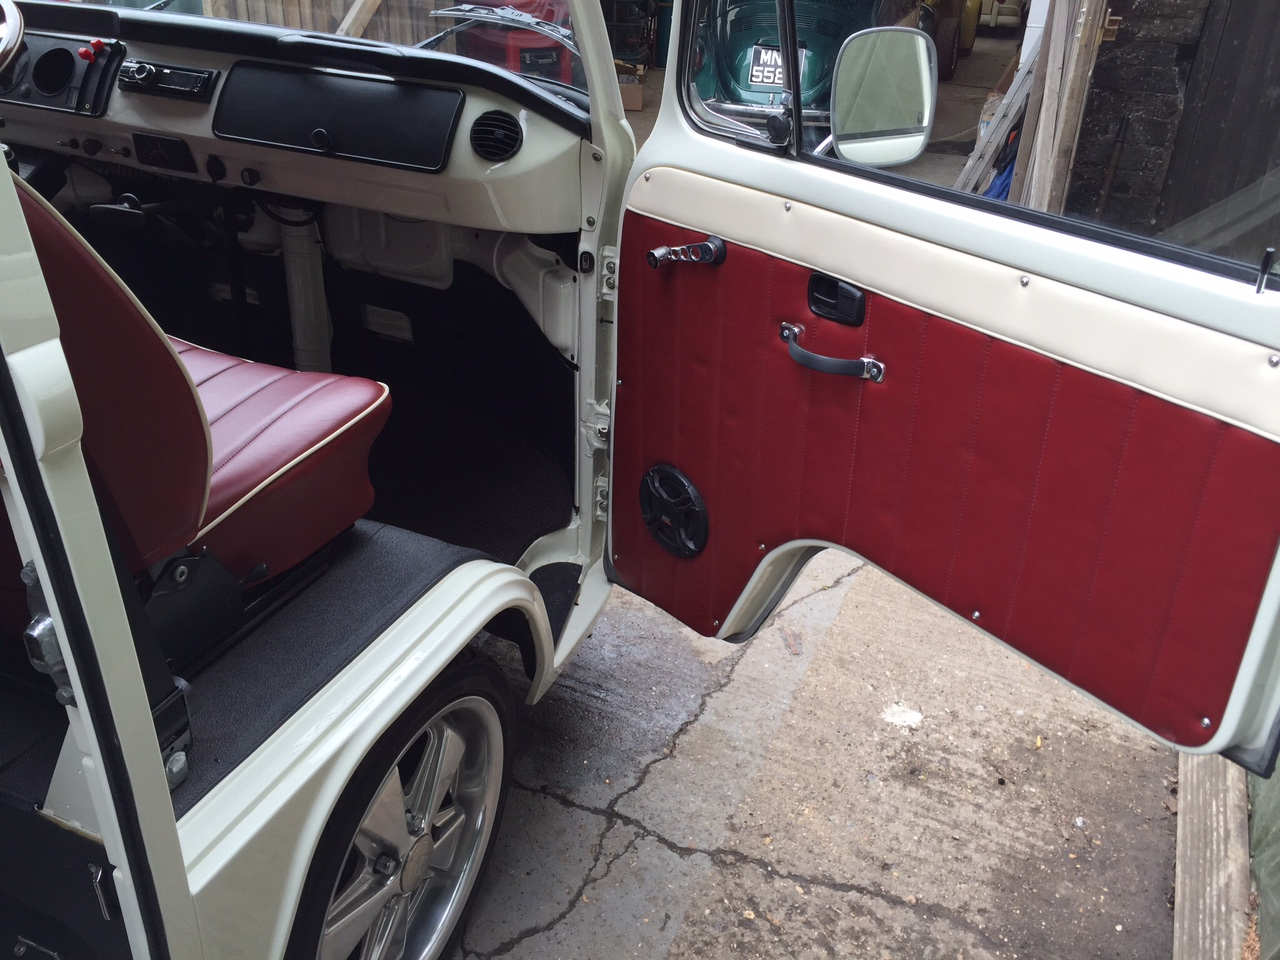 VW Westfalia Camper Van Door Lining